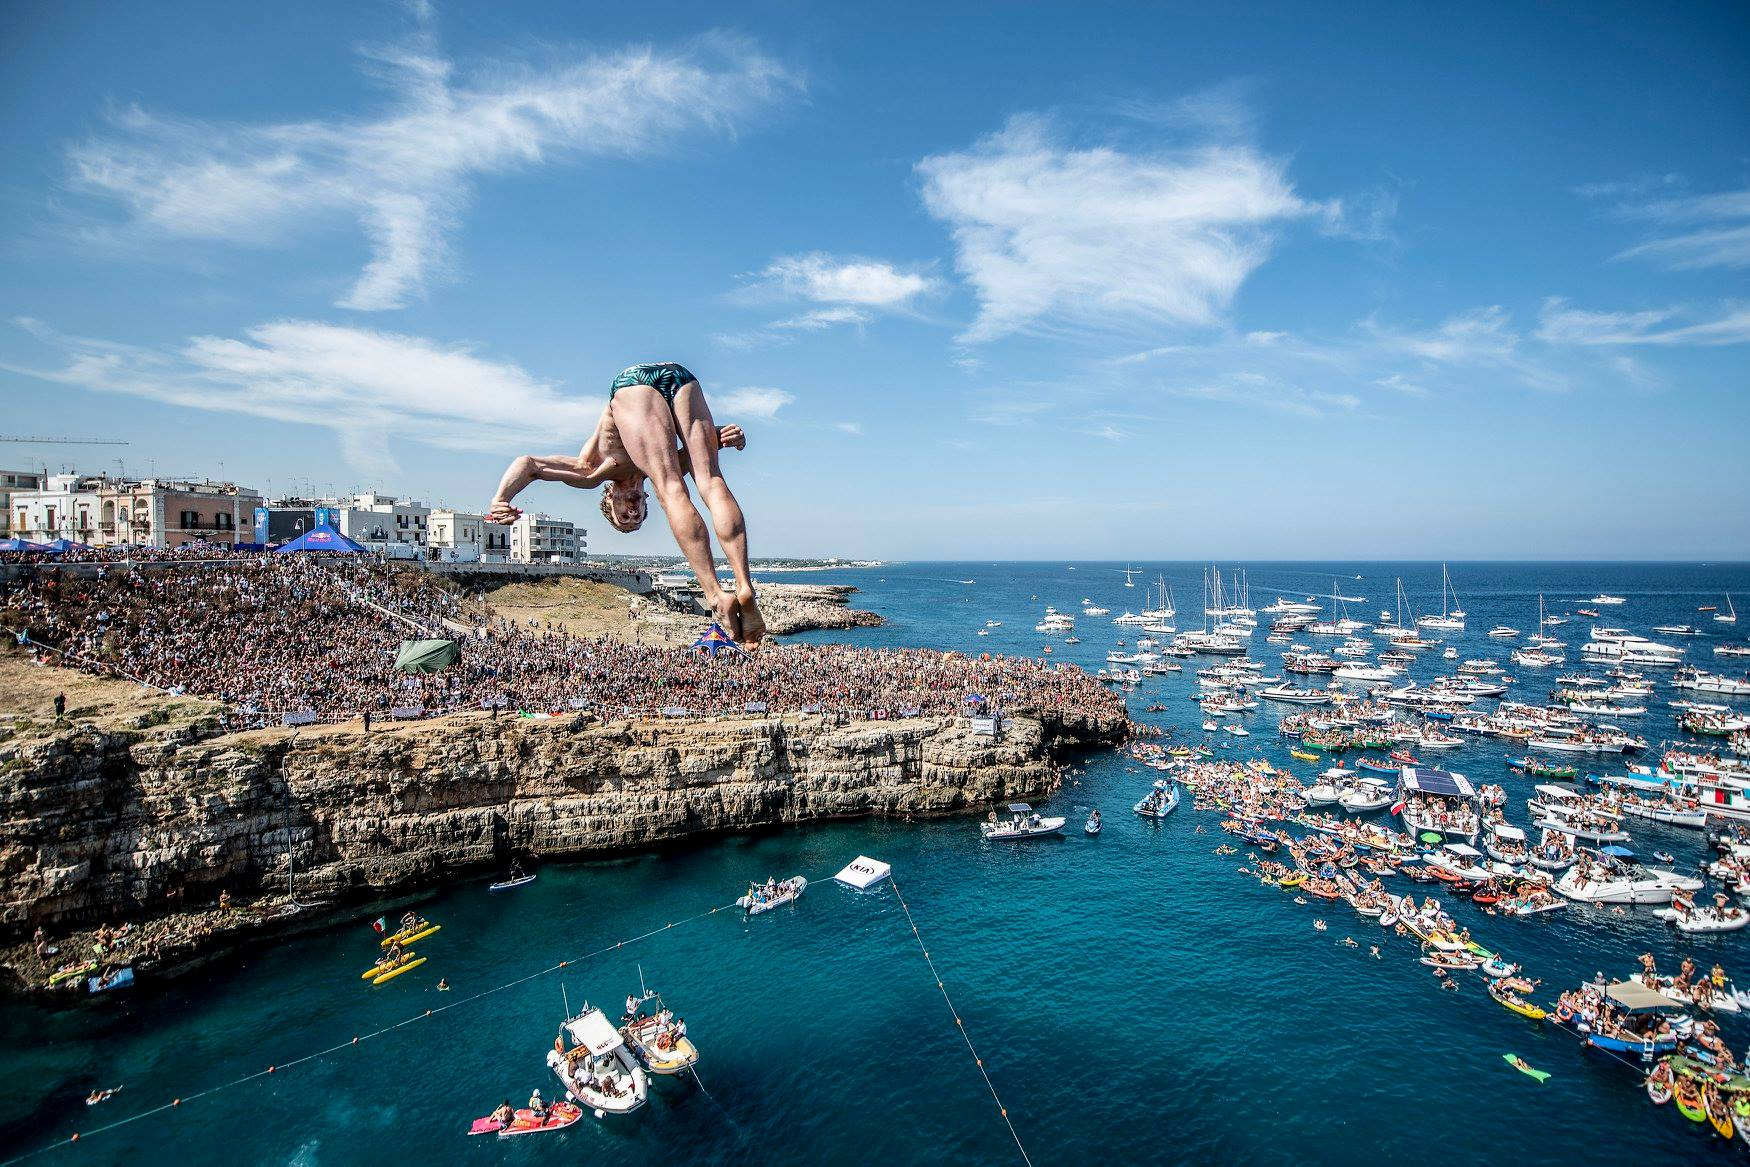 Tuffi spettacolari da Polignano per il Red Bull Cliff Diving